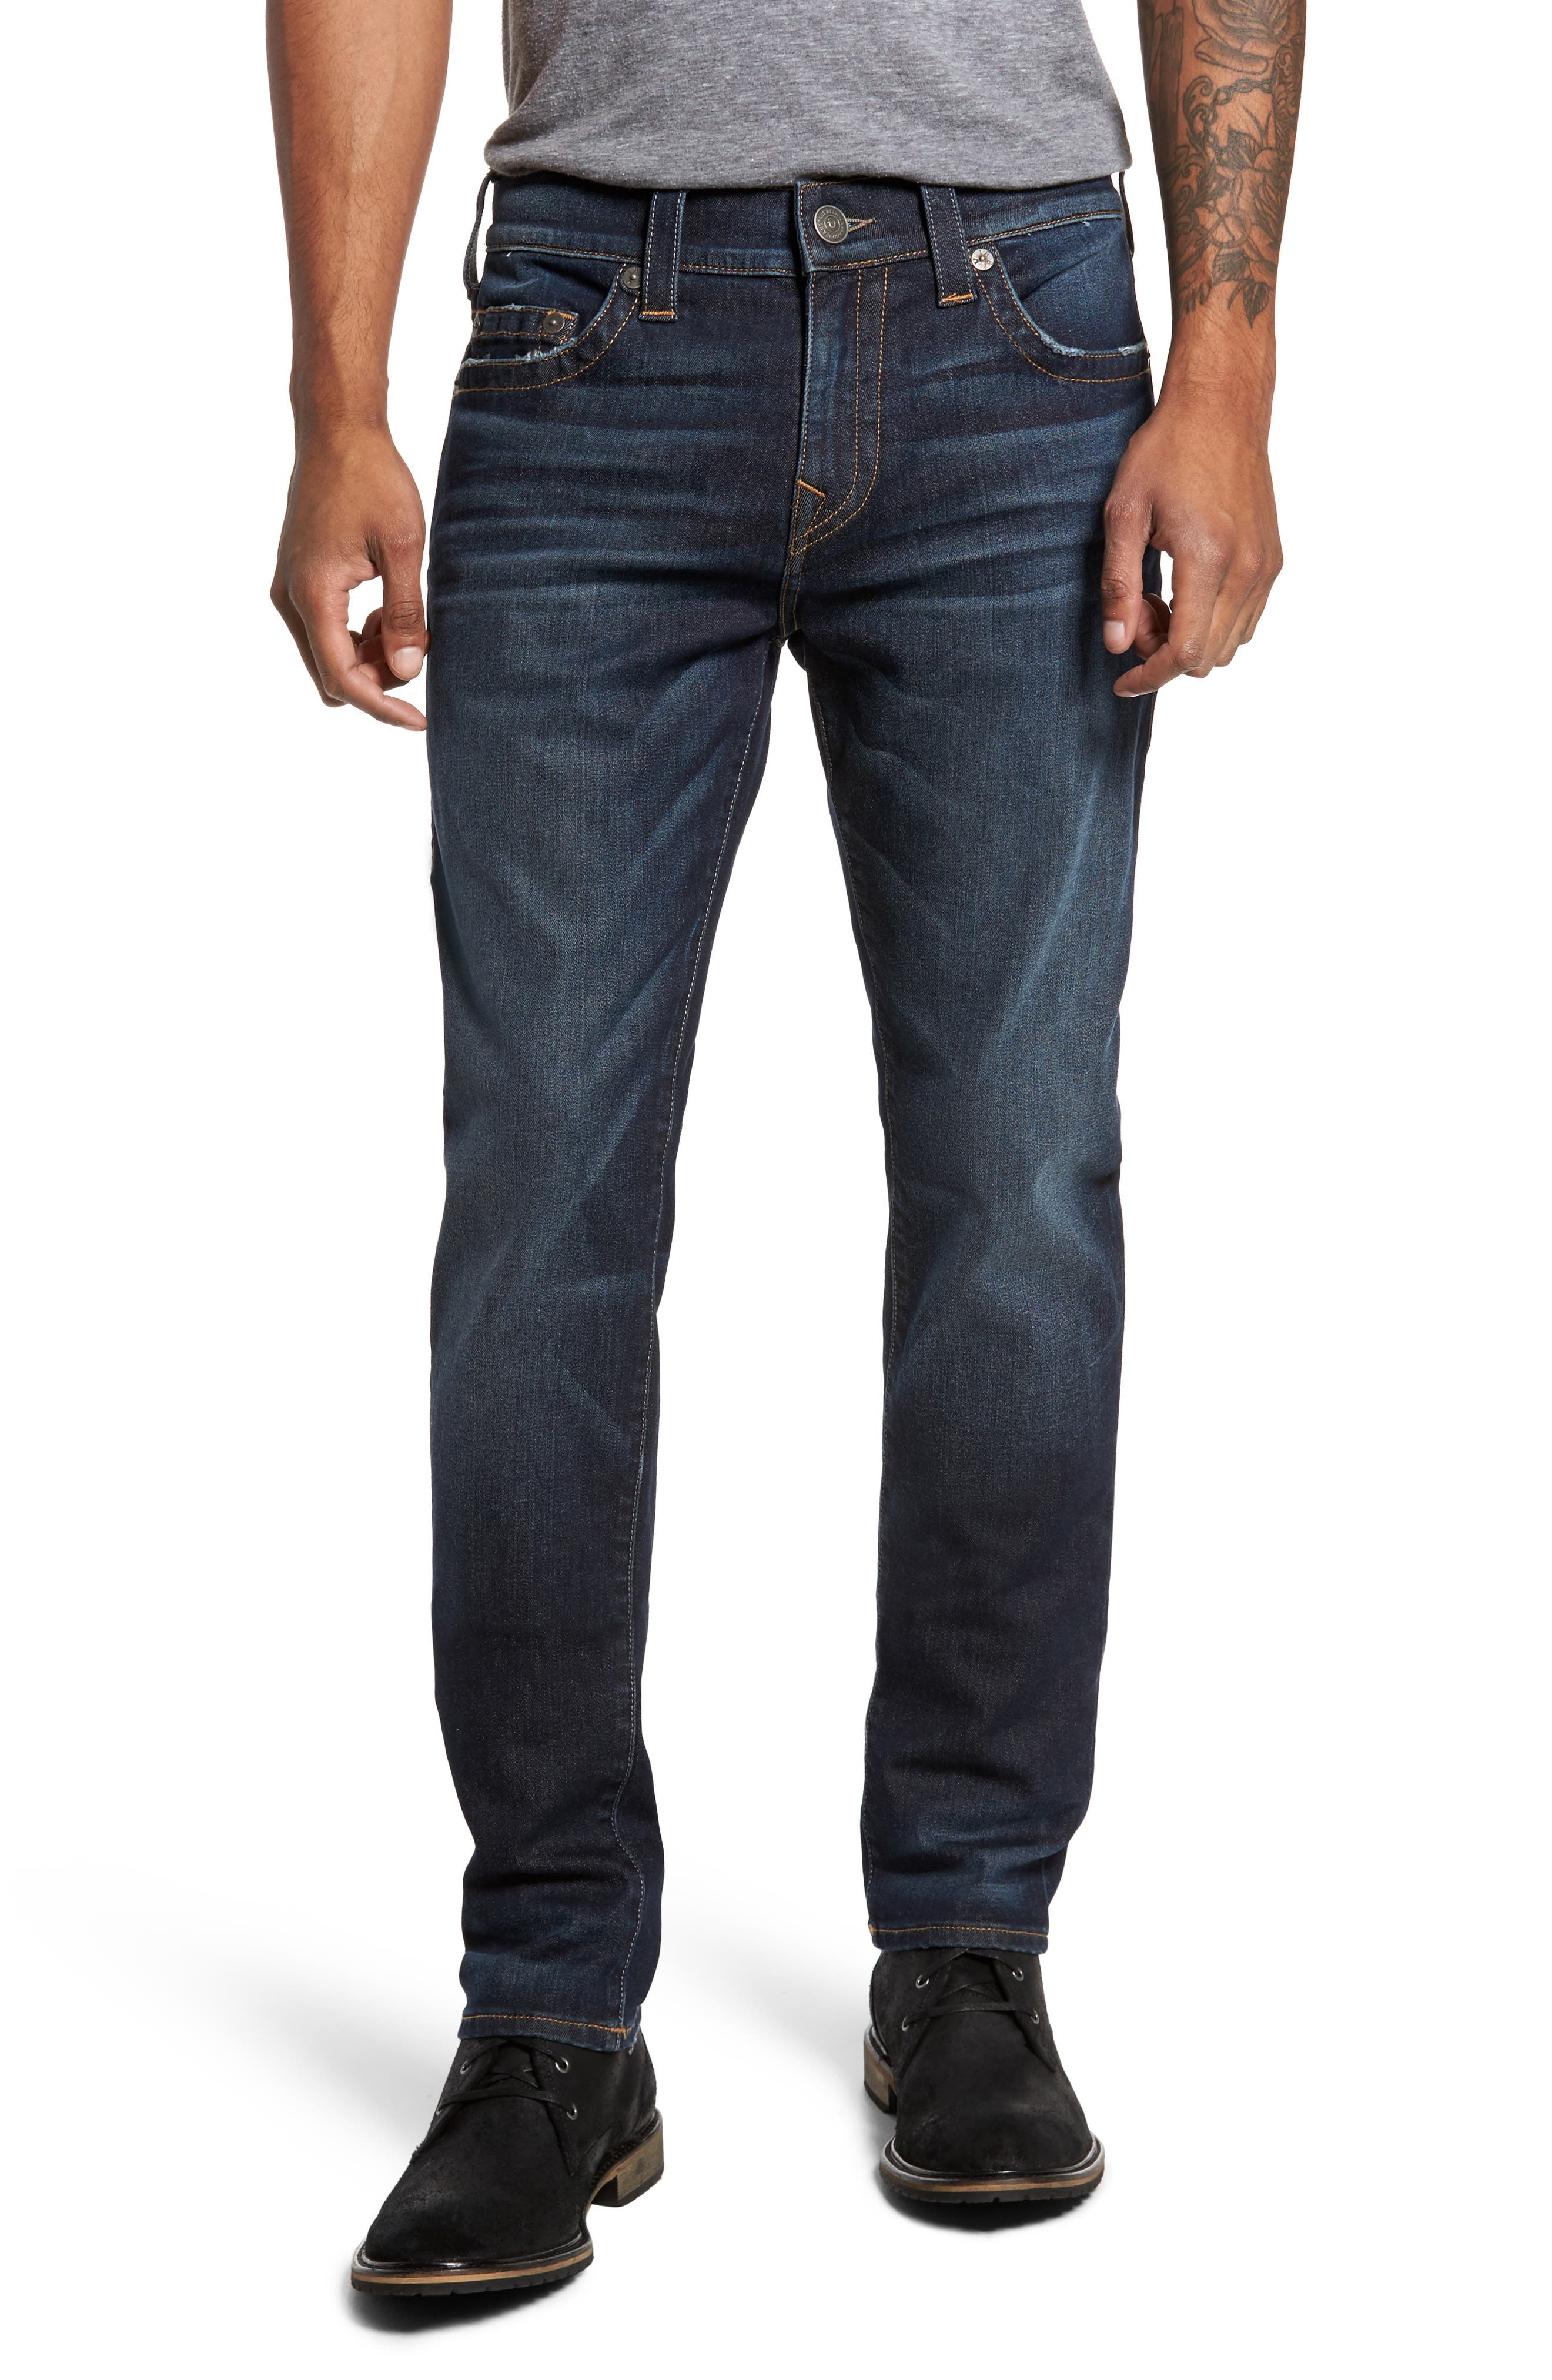 Alternate Image 1 Selected - True Religion Brand Jeans Rocco Skinny Fit Jeans (Dark Indigo Luxe)